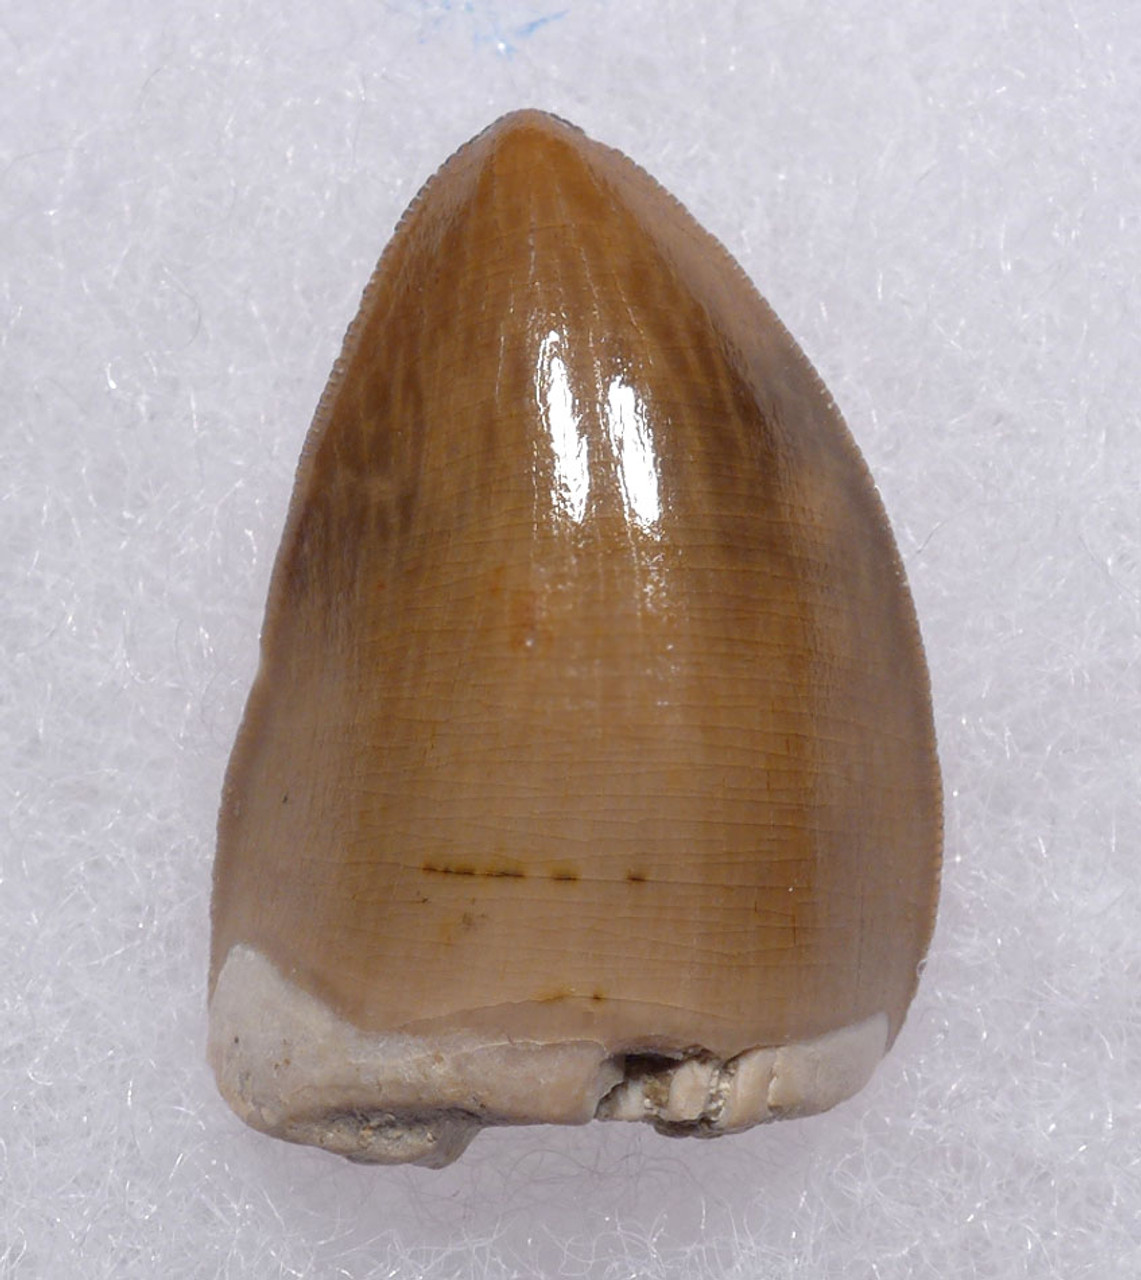 LARGE TRIASSIC RUTIODON PHYTOSAUR FOSSIL TOOTH WITH EXCELLENT PRESERVATION  *DT12-201